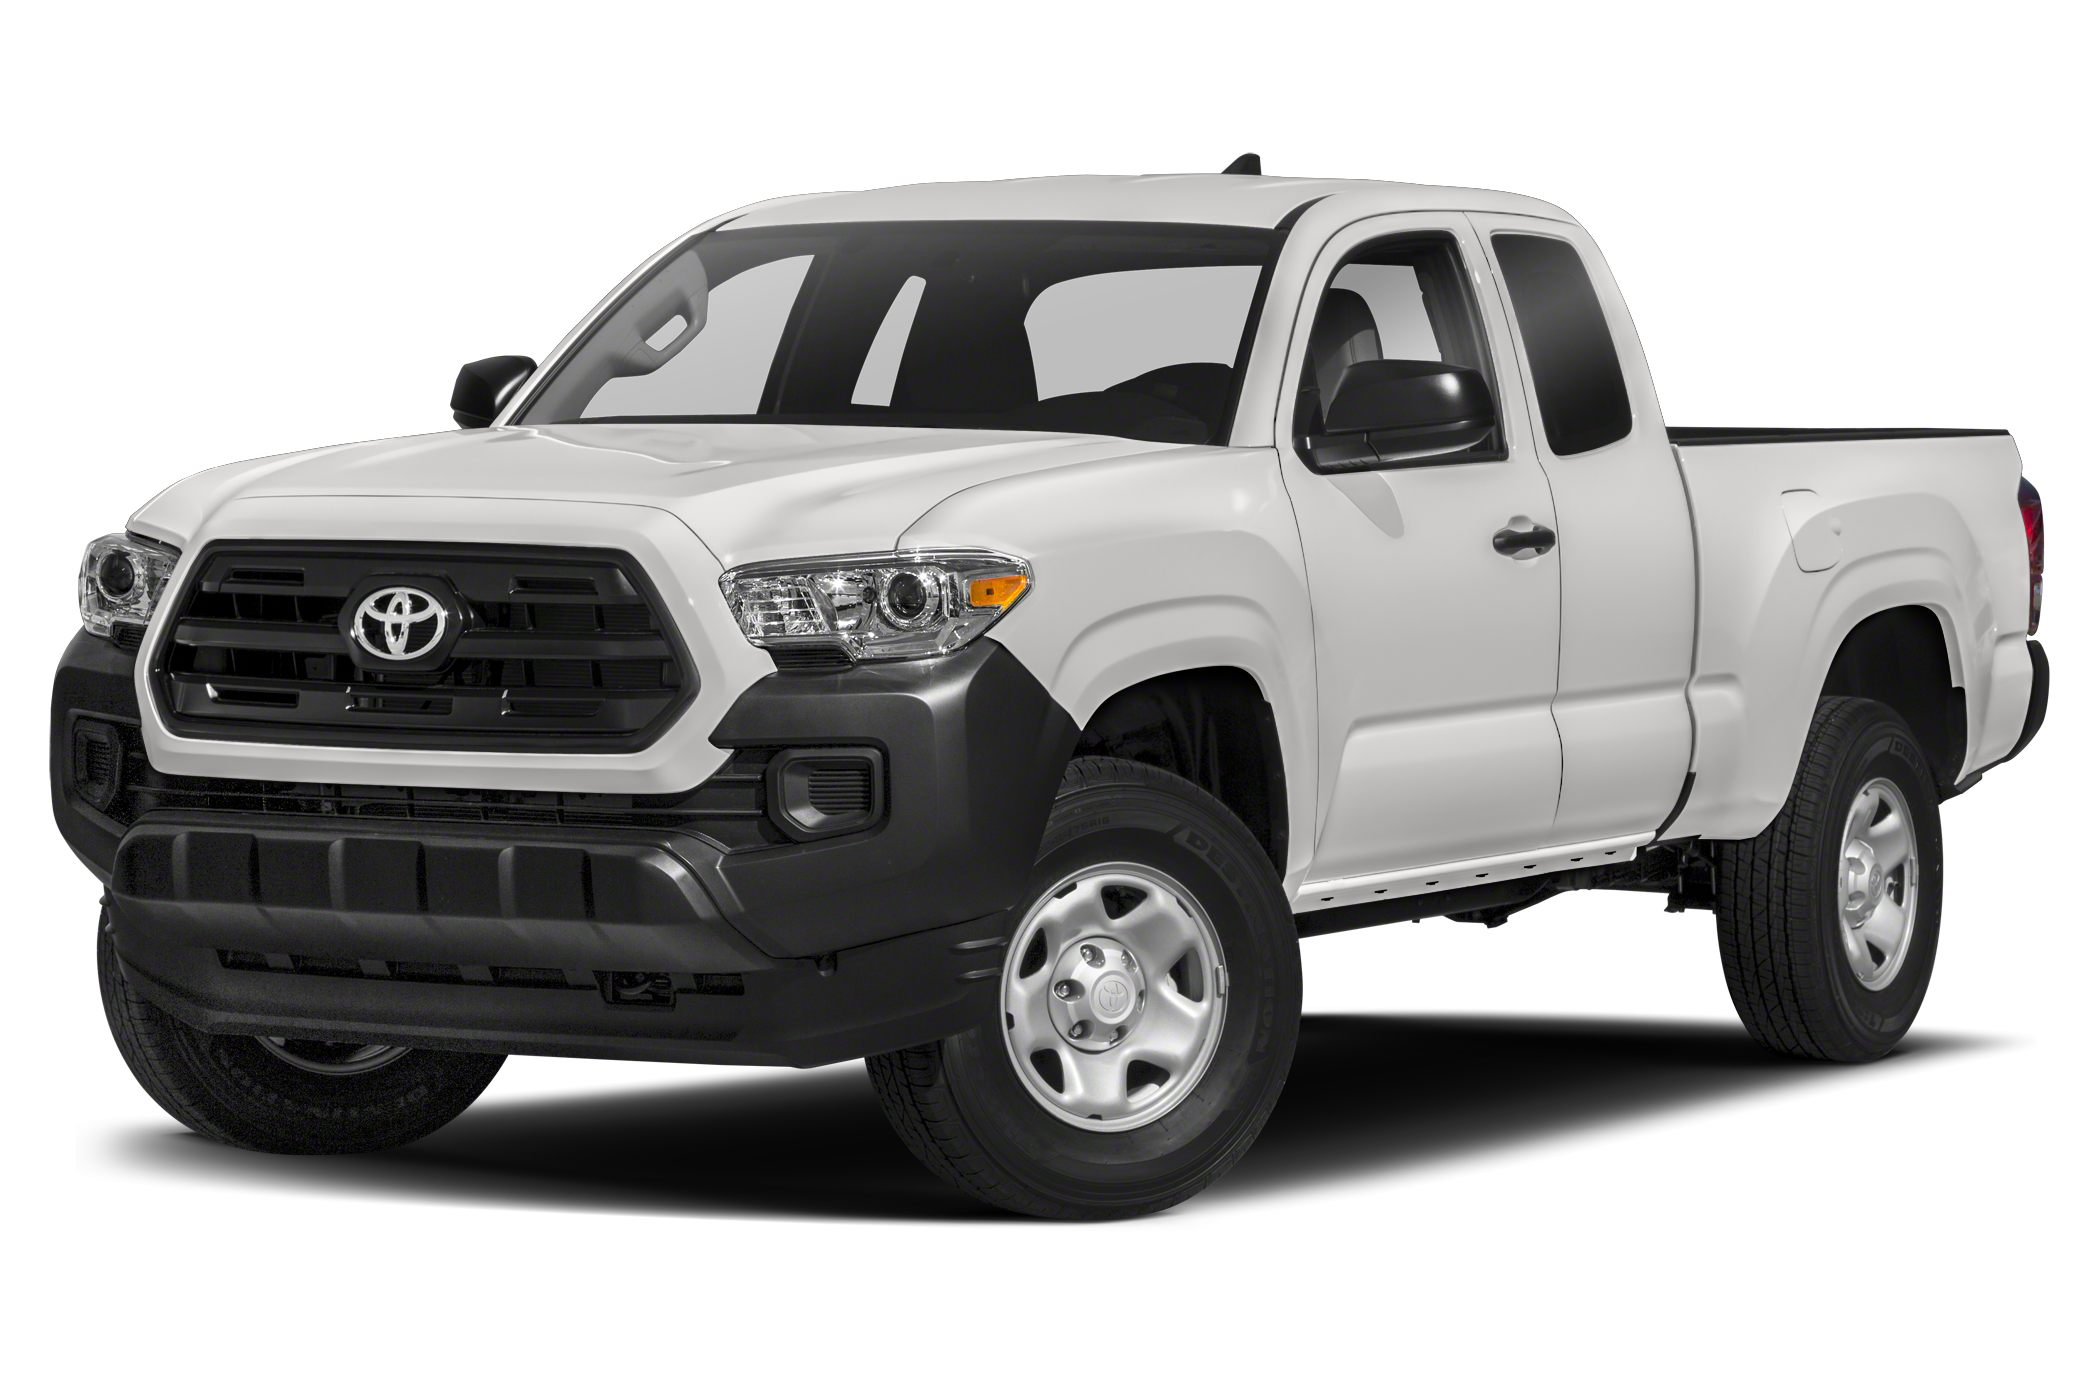 2017 toyota tacoma trd pro chicago 2016 photo gallery autoblog. Black Bedroom Furniture Sets. Home Design Ideas